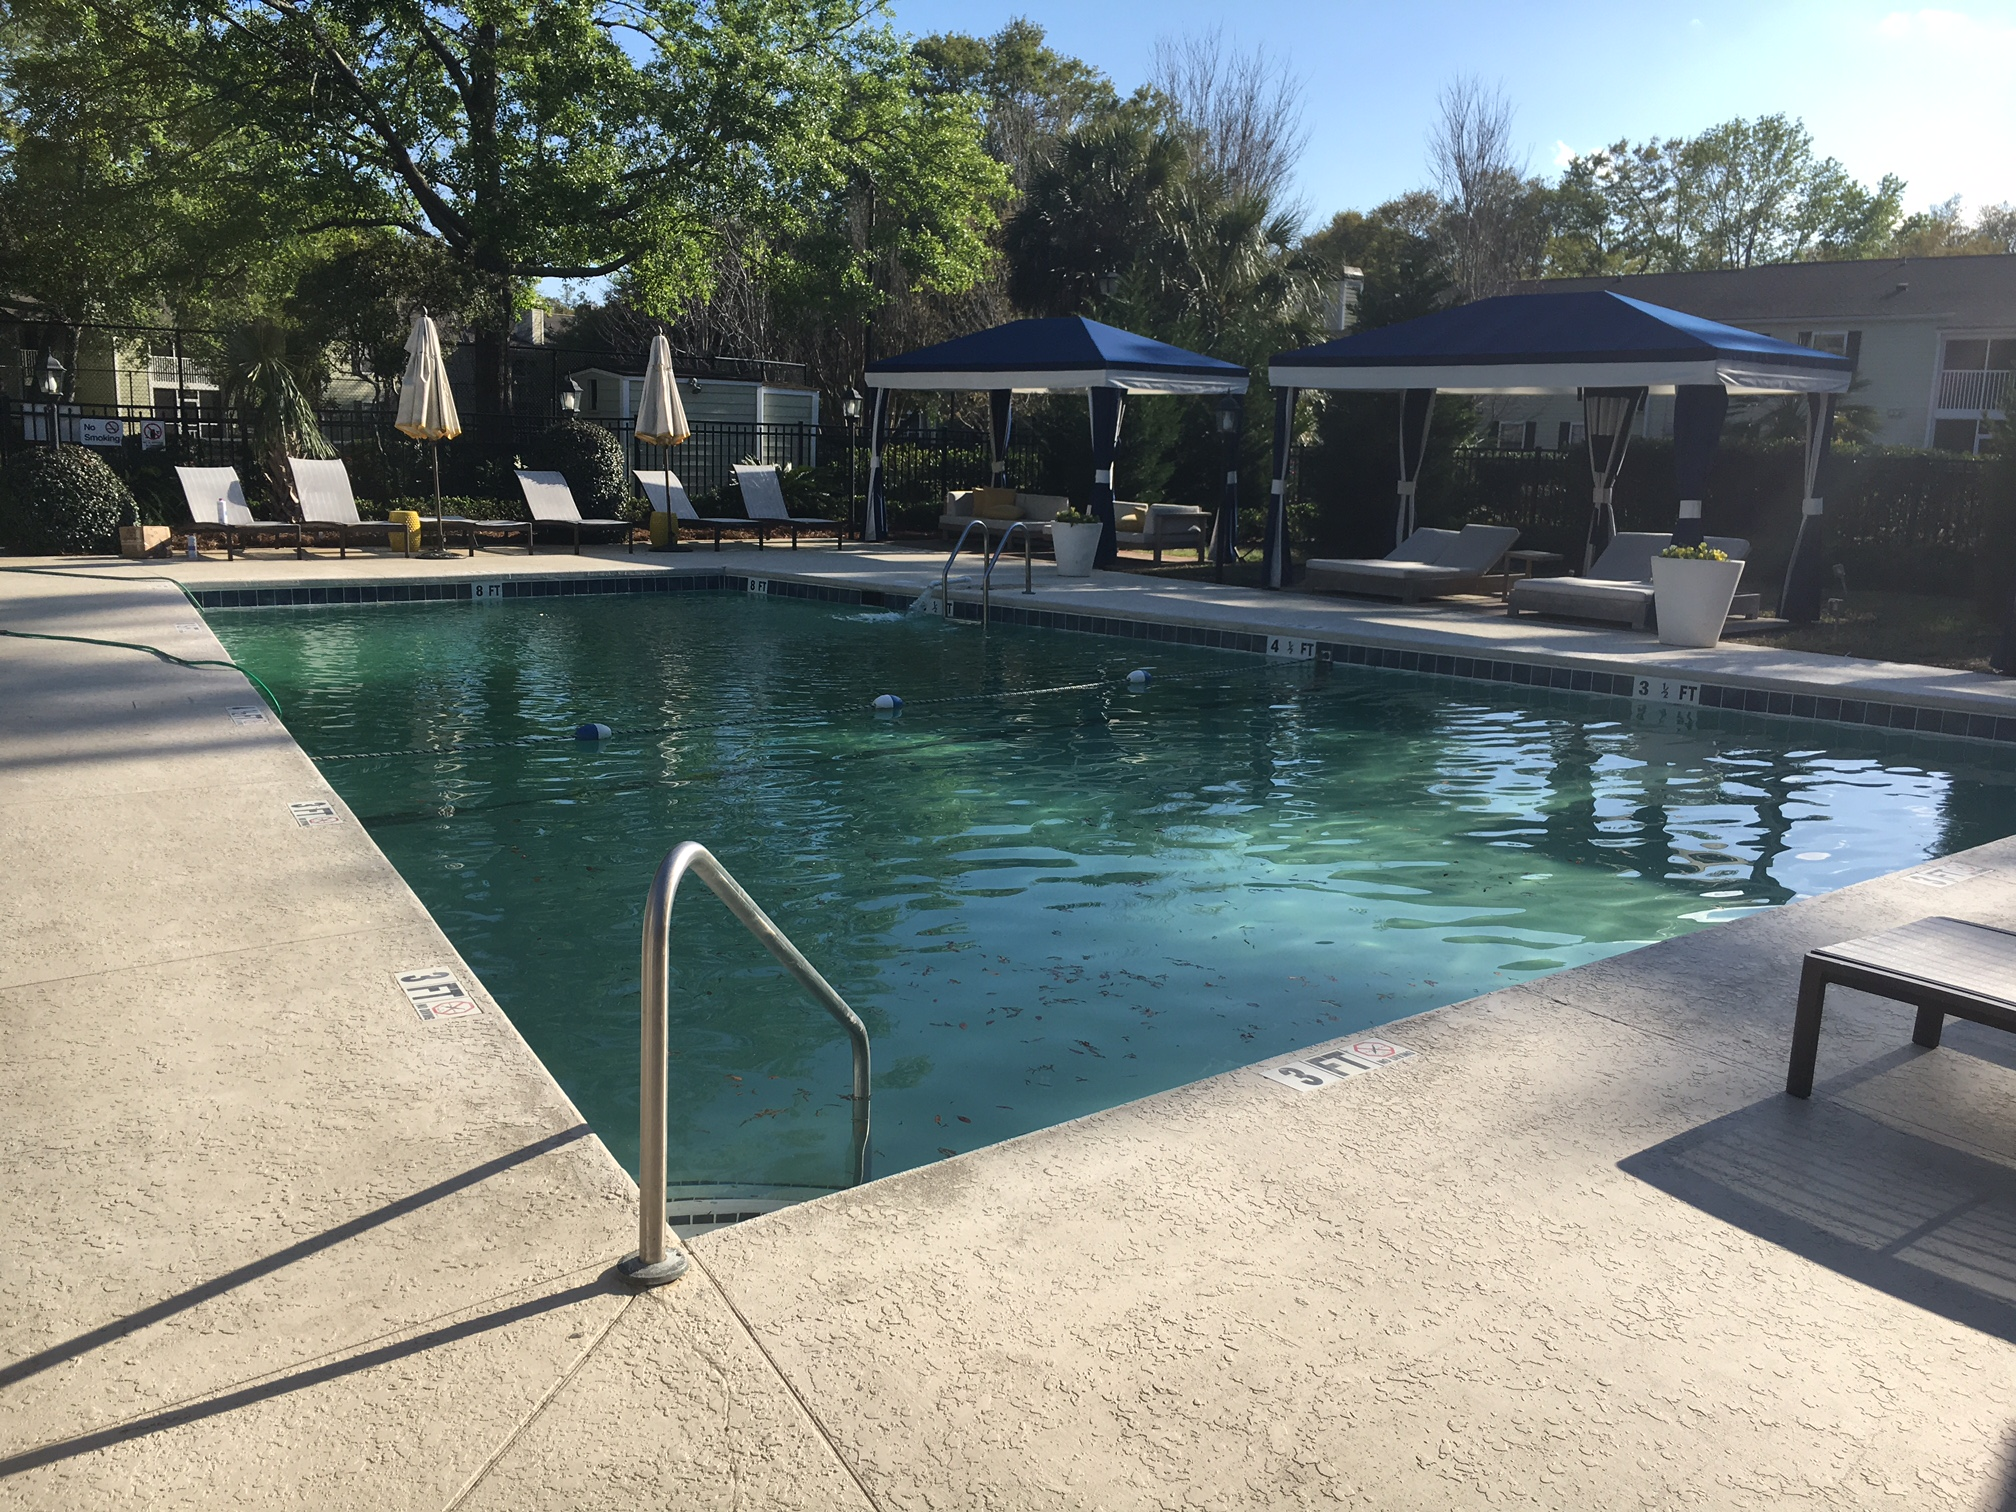 Mt pleasant pool remodel feb 2017 charleston pool experts for Pool redesign